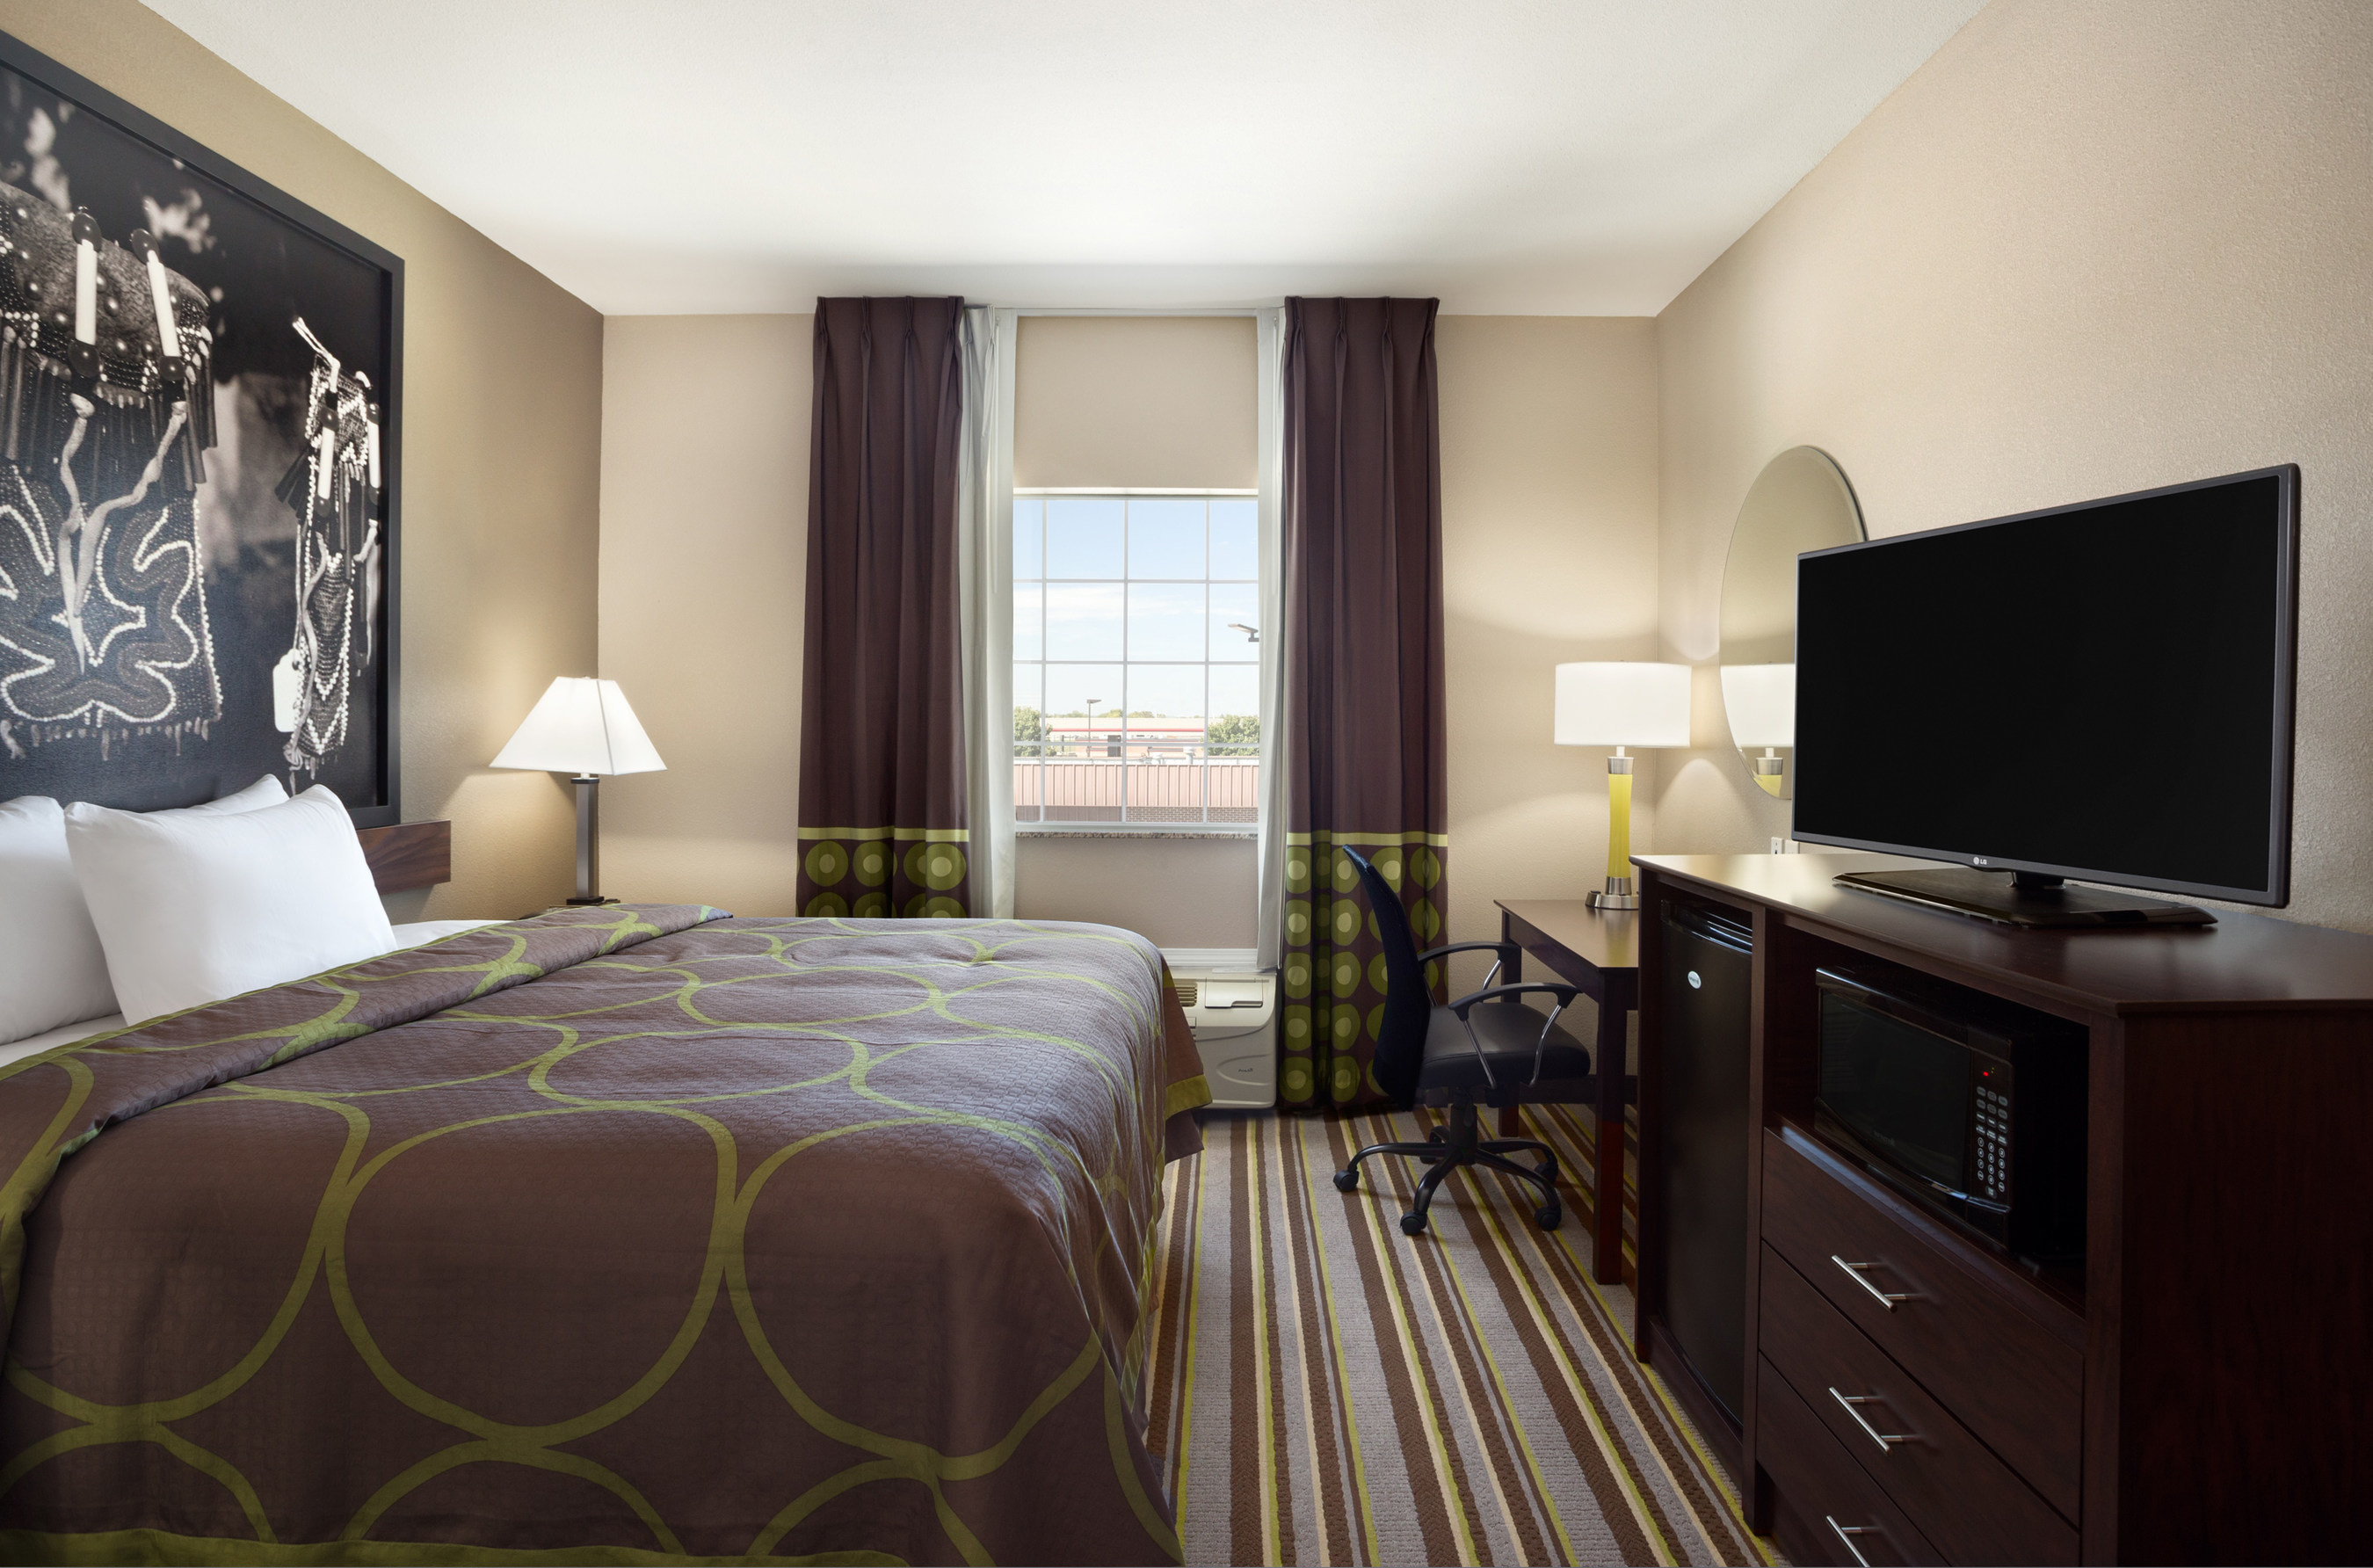 The Super 8 brand's North American redesign centers around a reimagined guestroom featuring soothing color palettes, sleek finishings and bedding, as well as modern amenities and local artwork. Above, the Super 8 in Owasso, Okla.